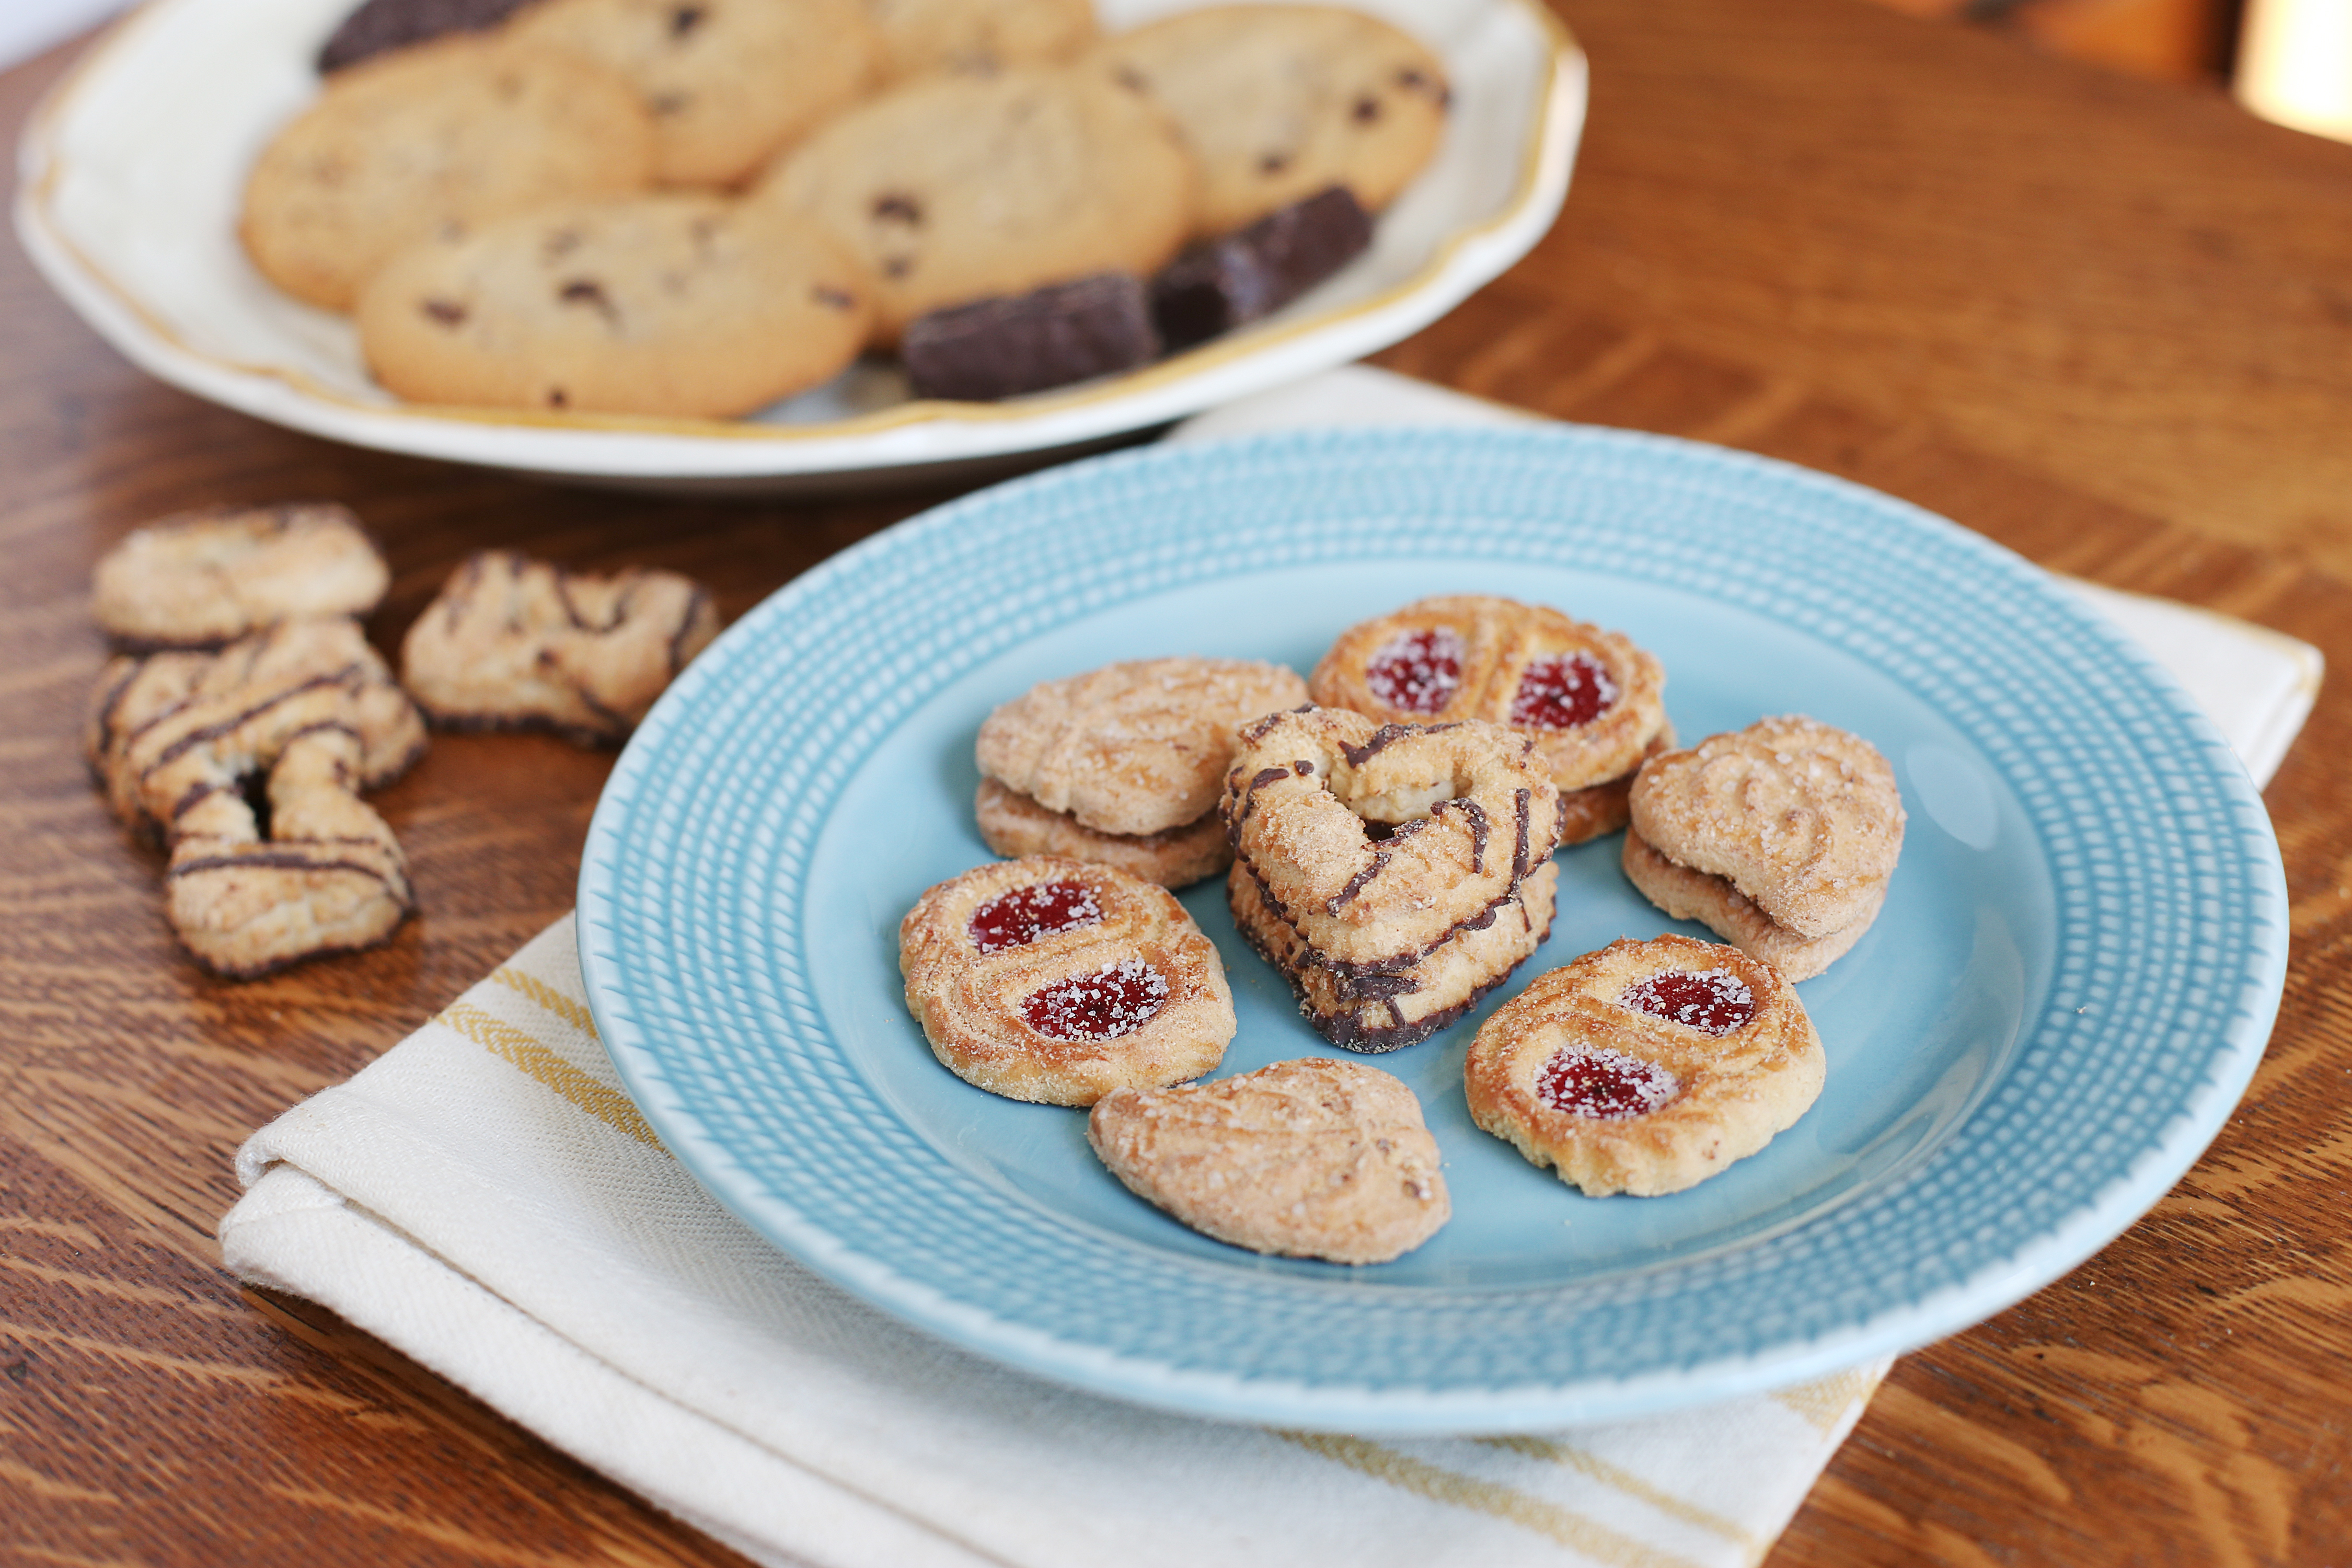 How To Arrange A Cookie Platter For A Party